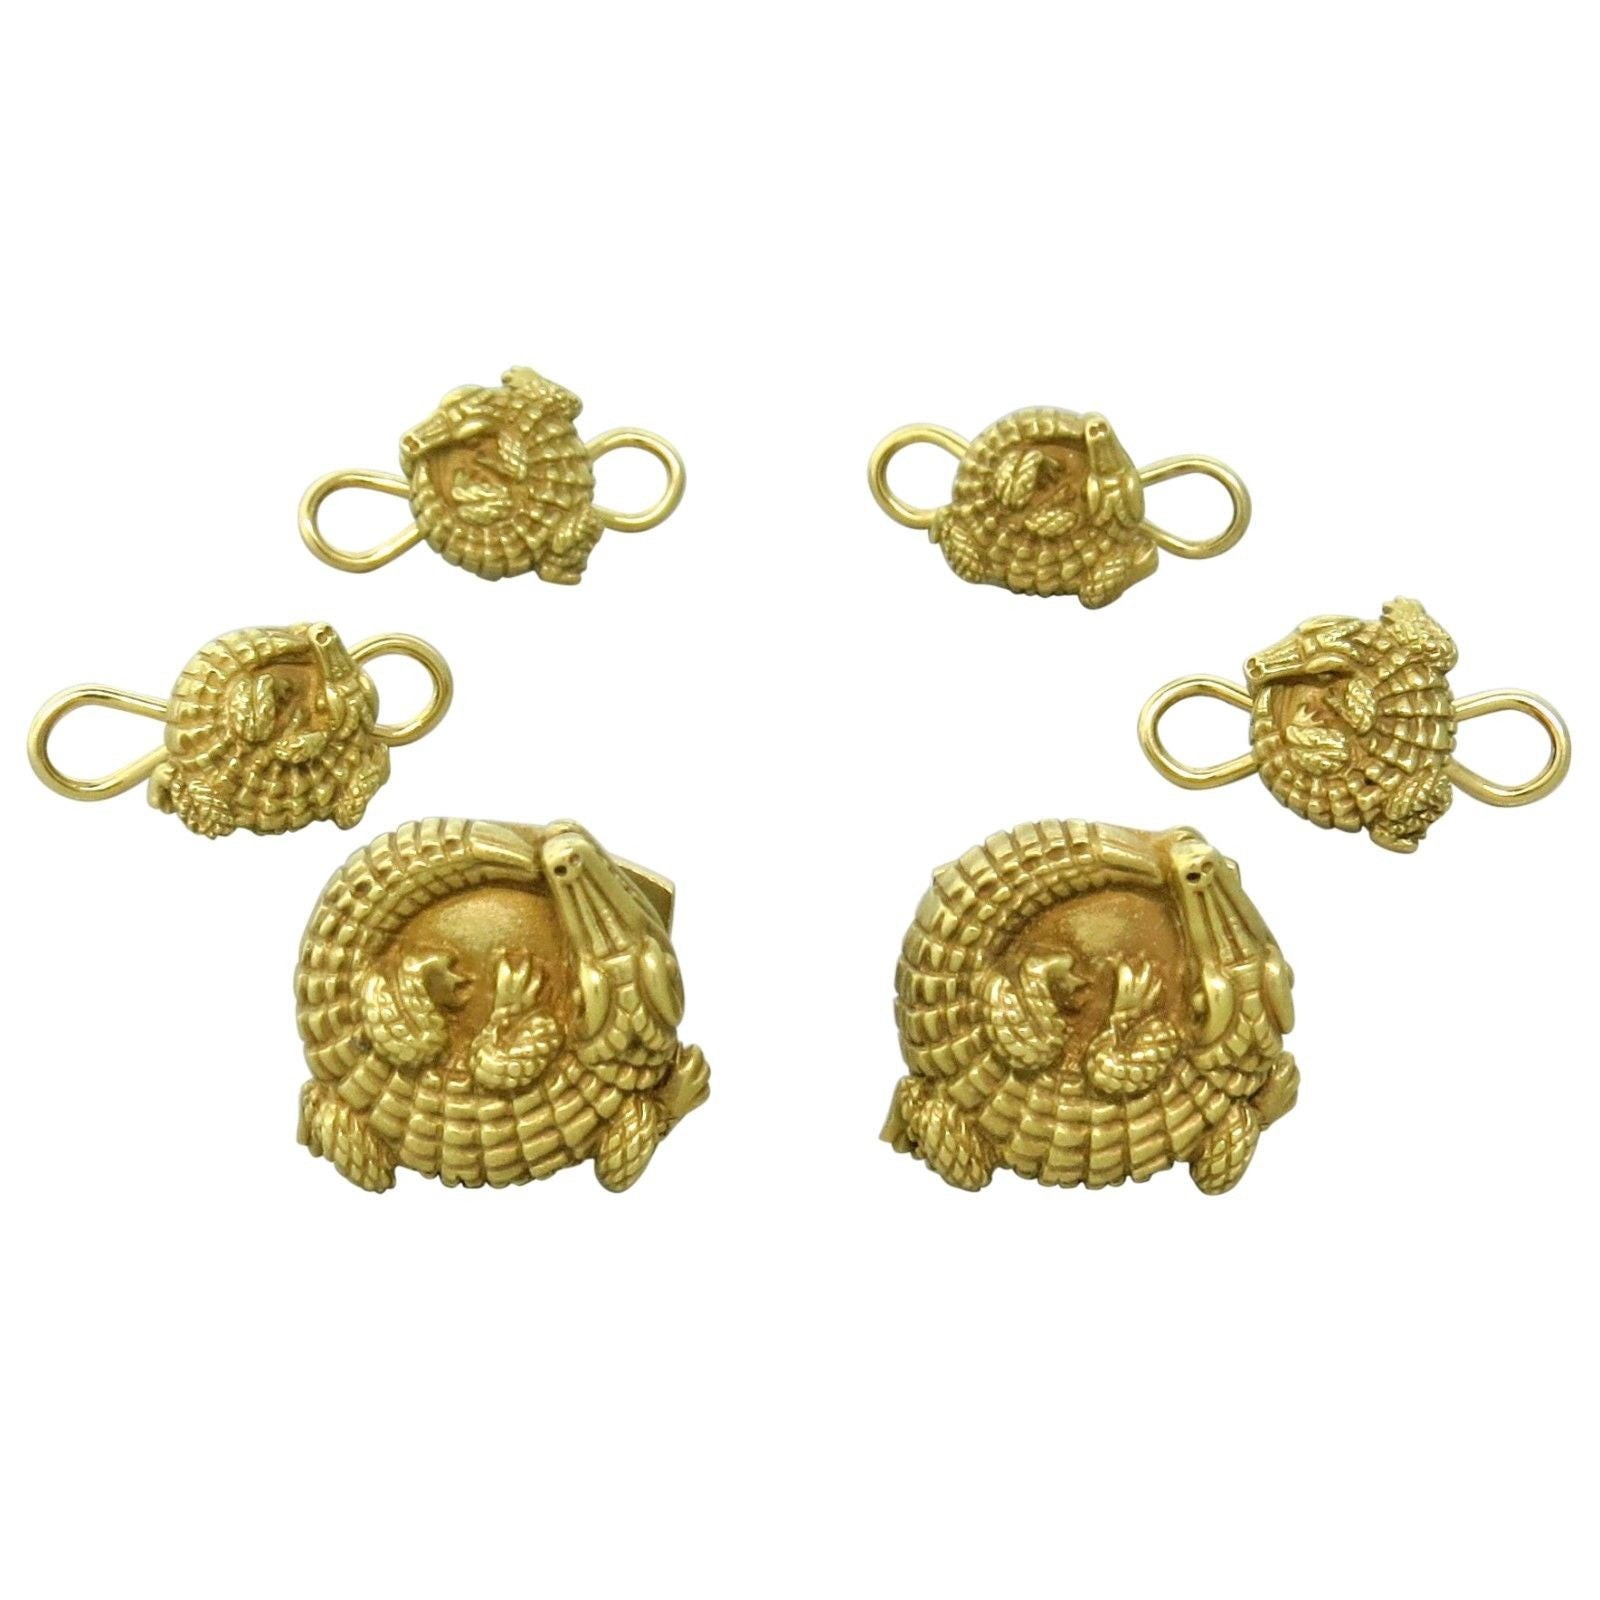 Kieselstein Cord Gold Alligator Cufflinks and Studs Set